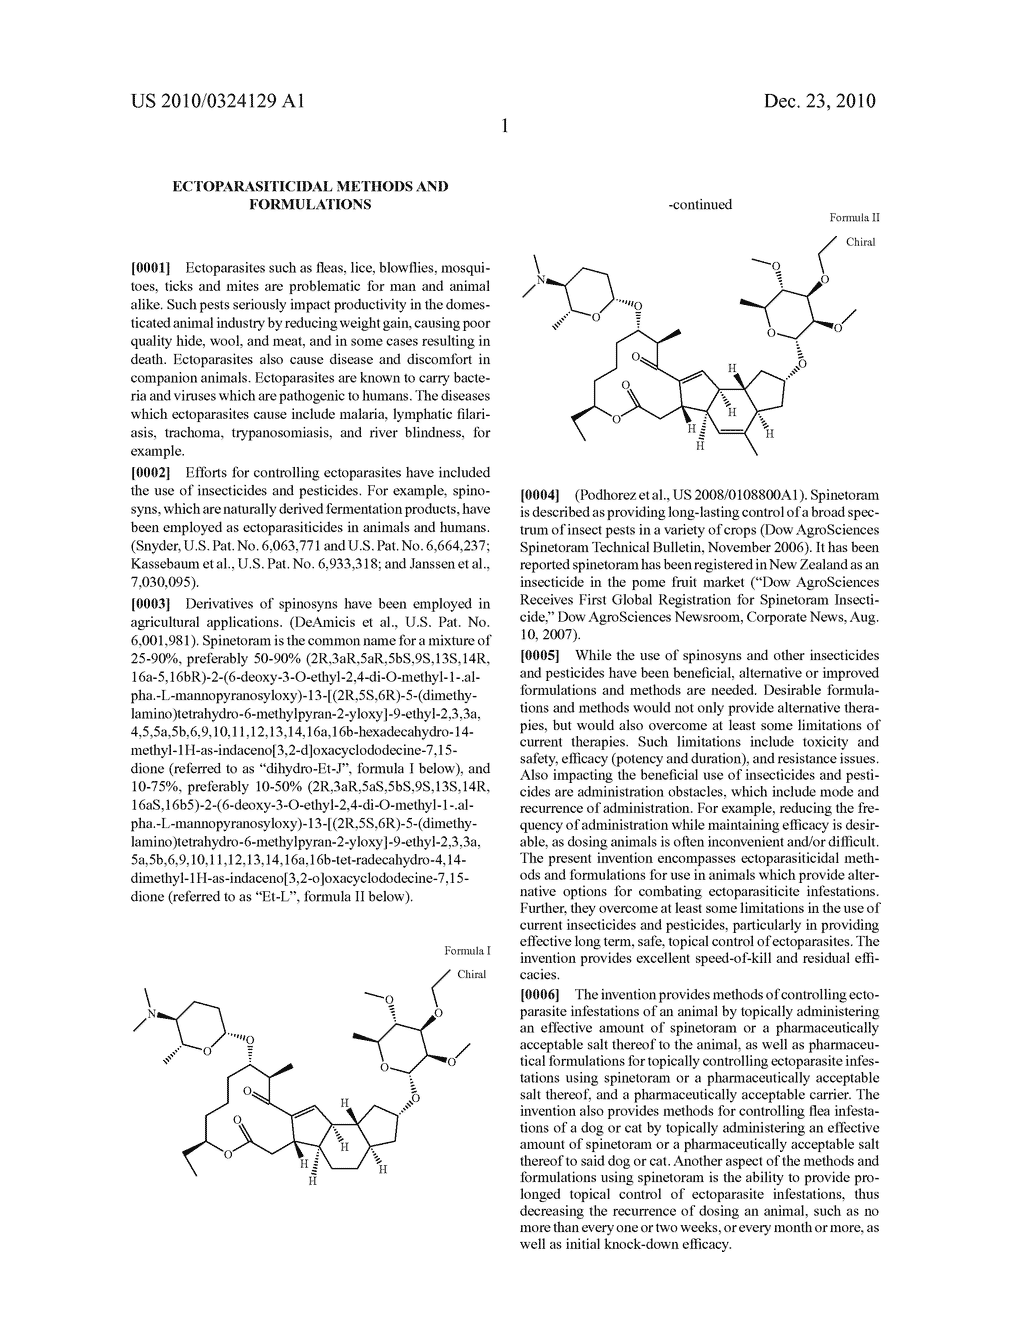 ECTOPARASITICIDAL METHODS AND FORMULATIONS - diagram, schematic, and image 02